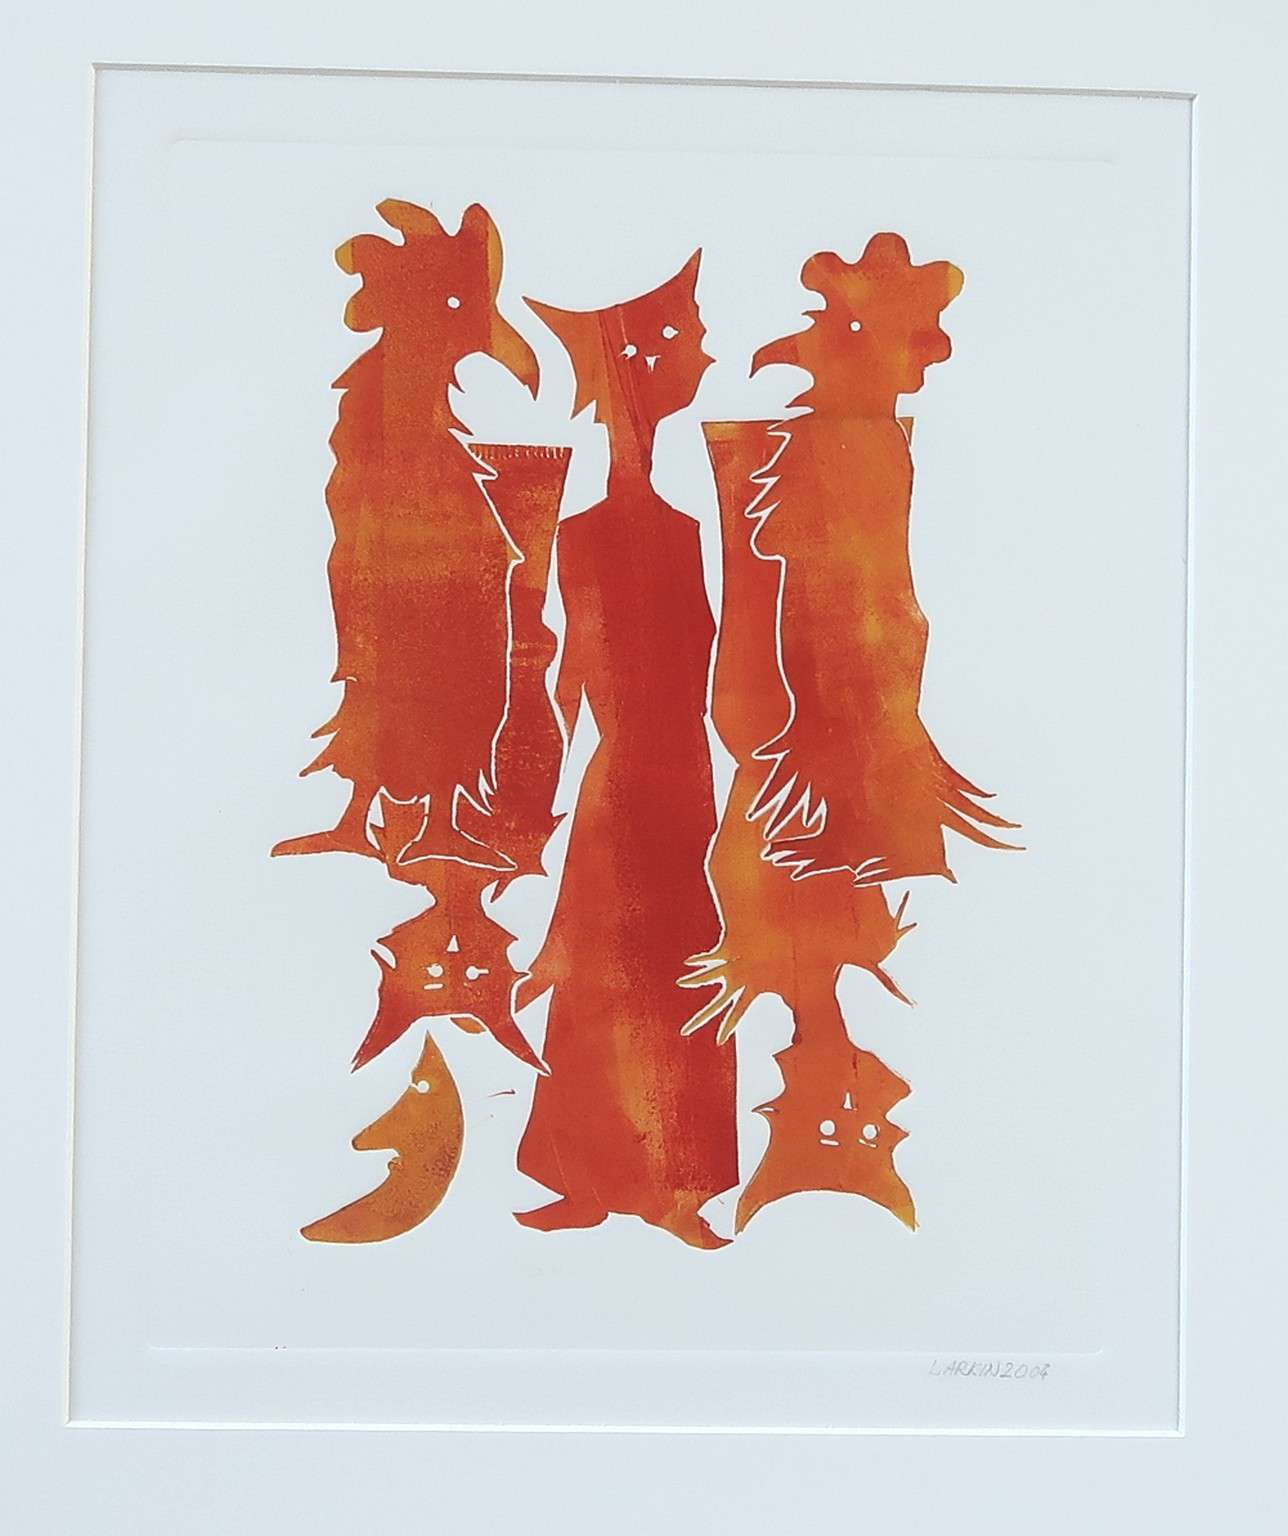 - Cats and chickens - Druk overig - 32x39